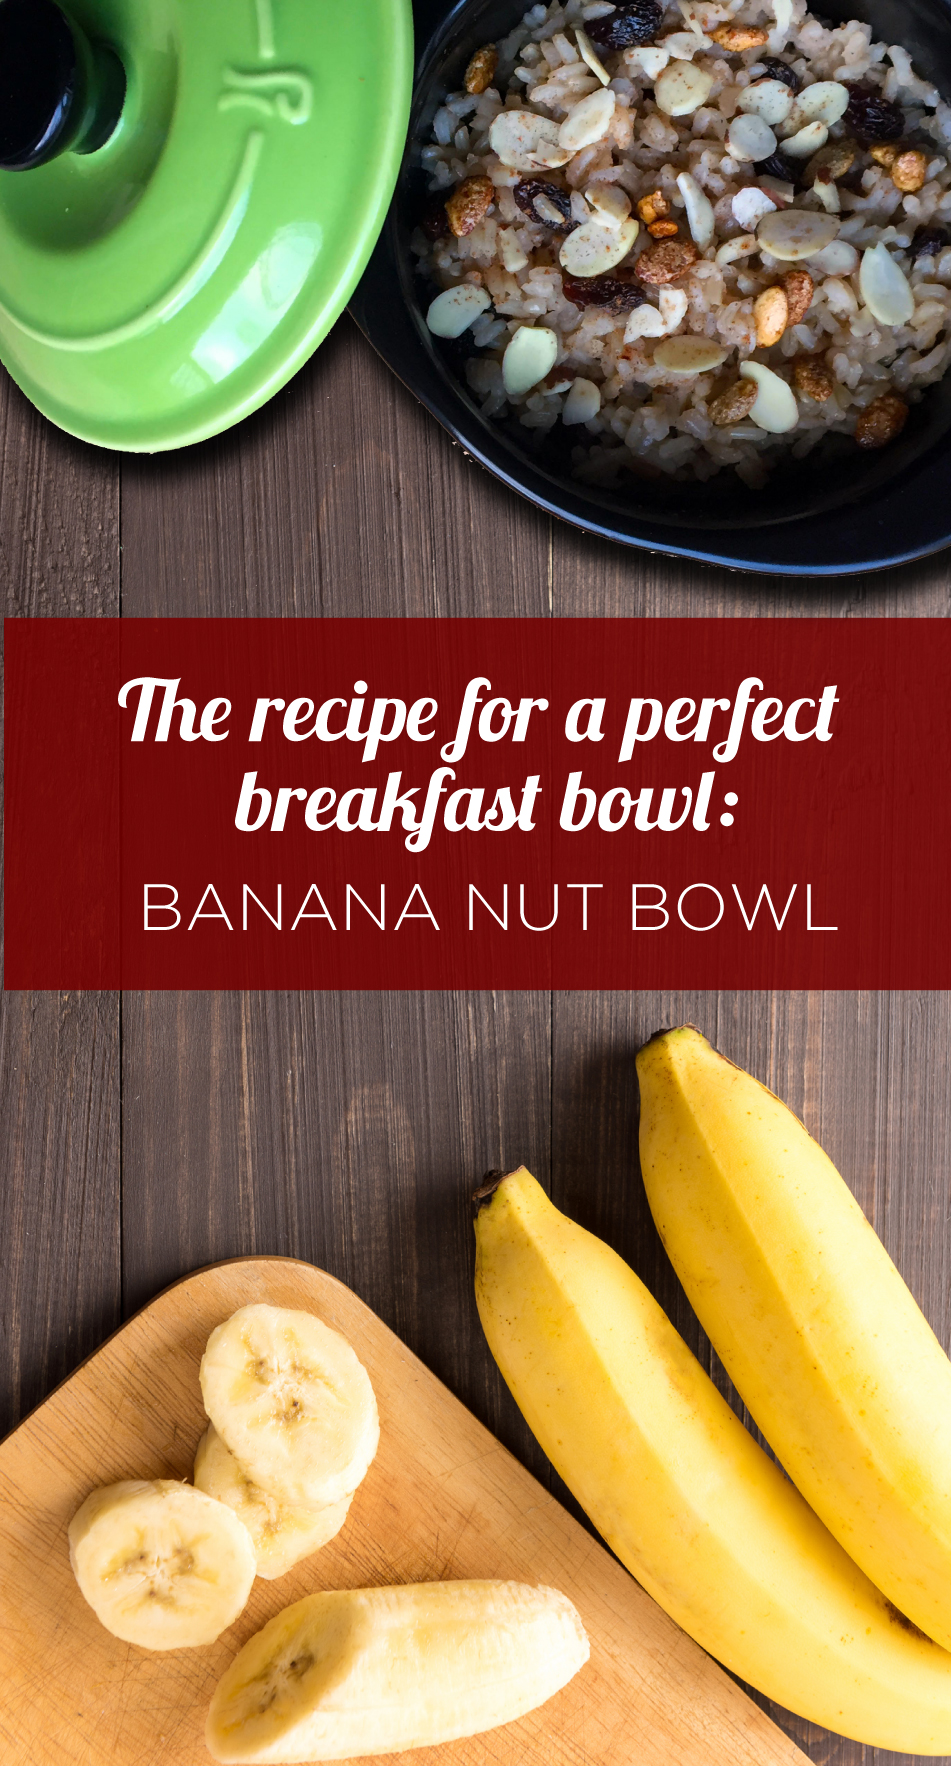 The recipe for a perfect breakfast bowl: Banana Nut Bowl